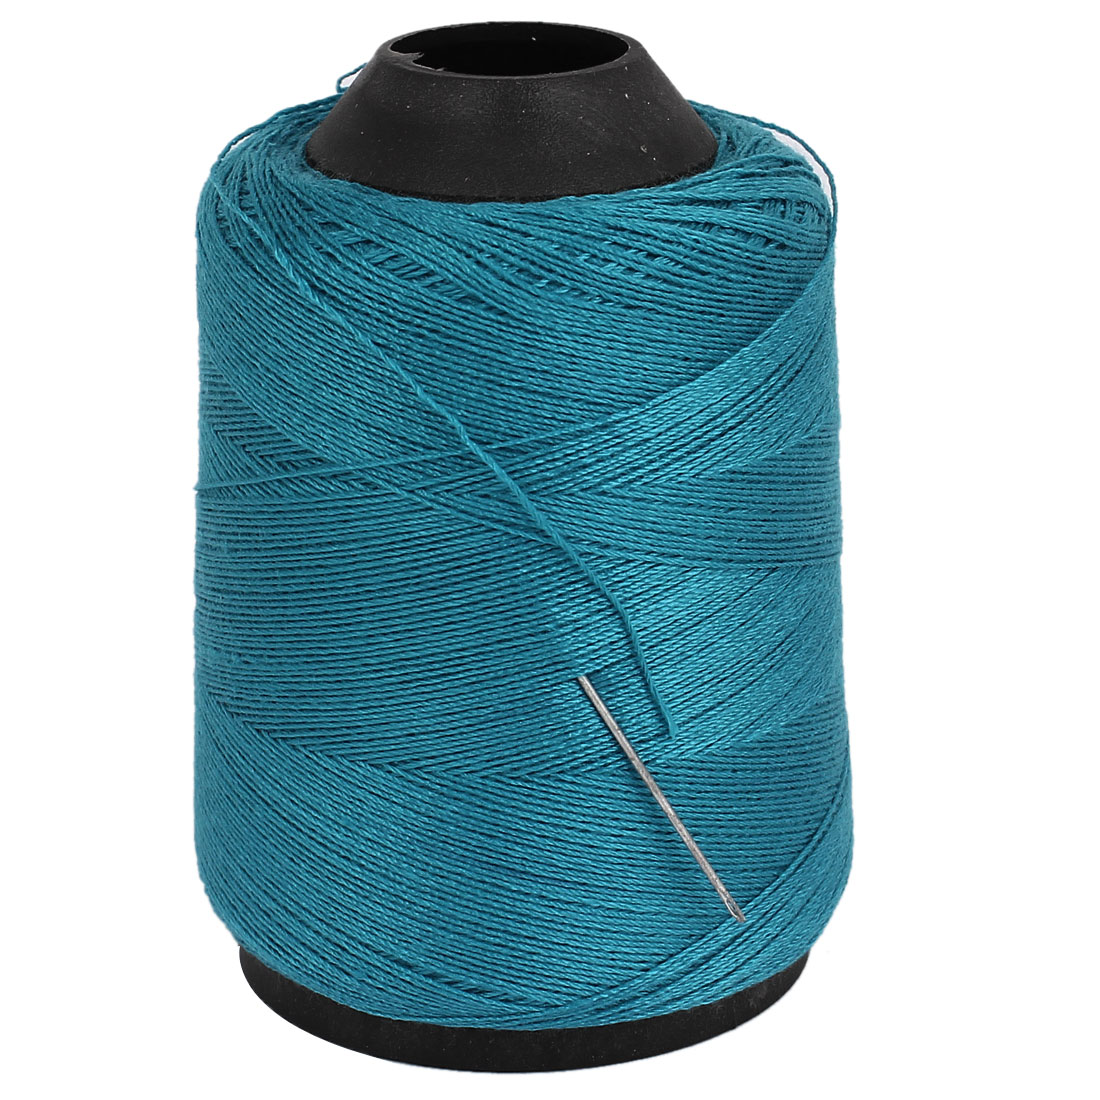 Hand Machine Cotton Darning Stitching Spool Sewing Threaded Reel Blue